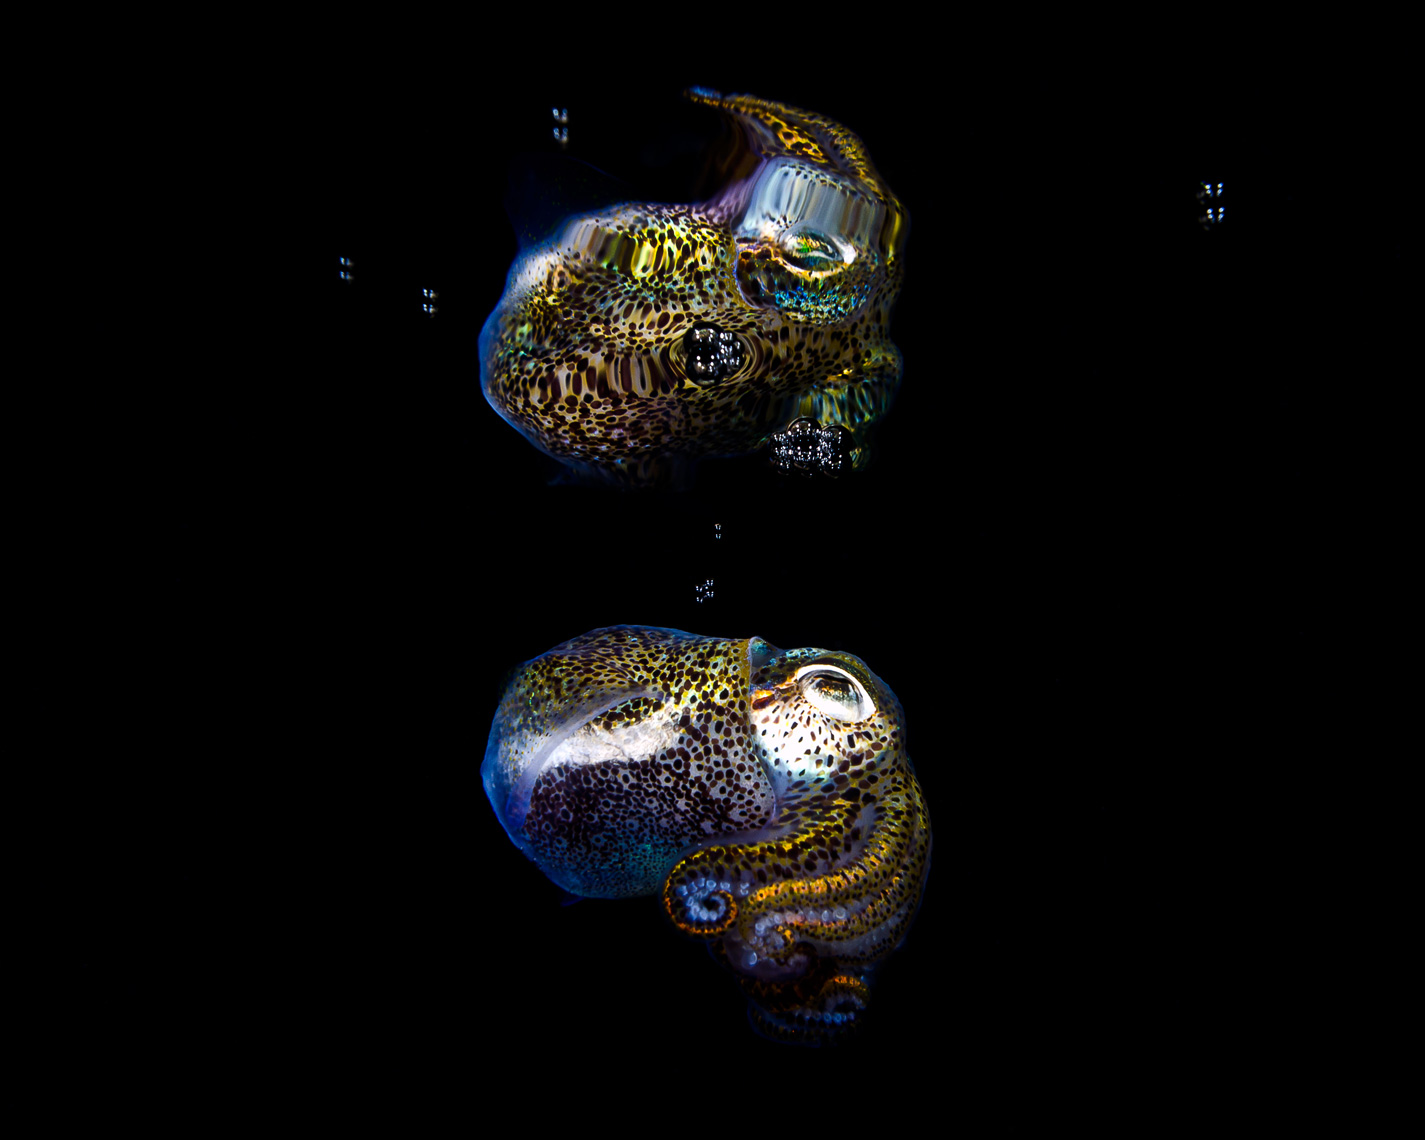 Anilao - bobtail squid surface reflection